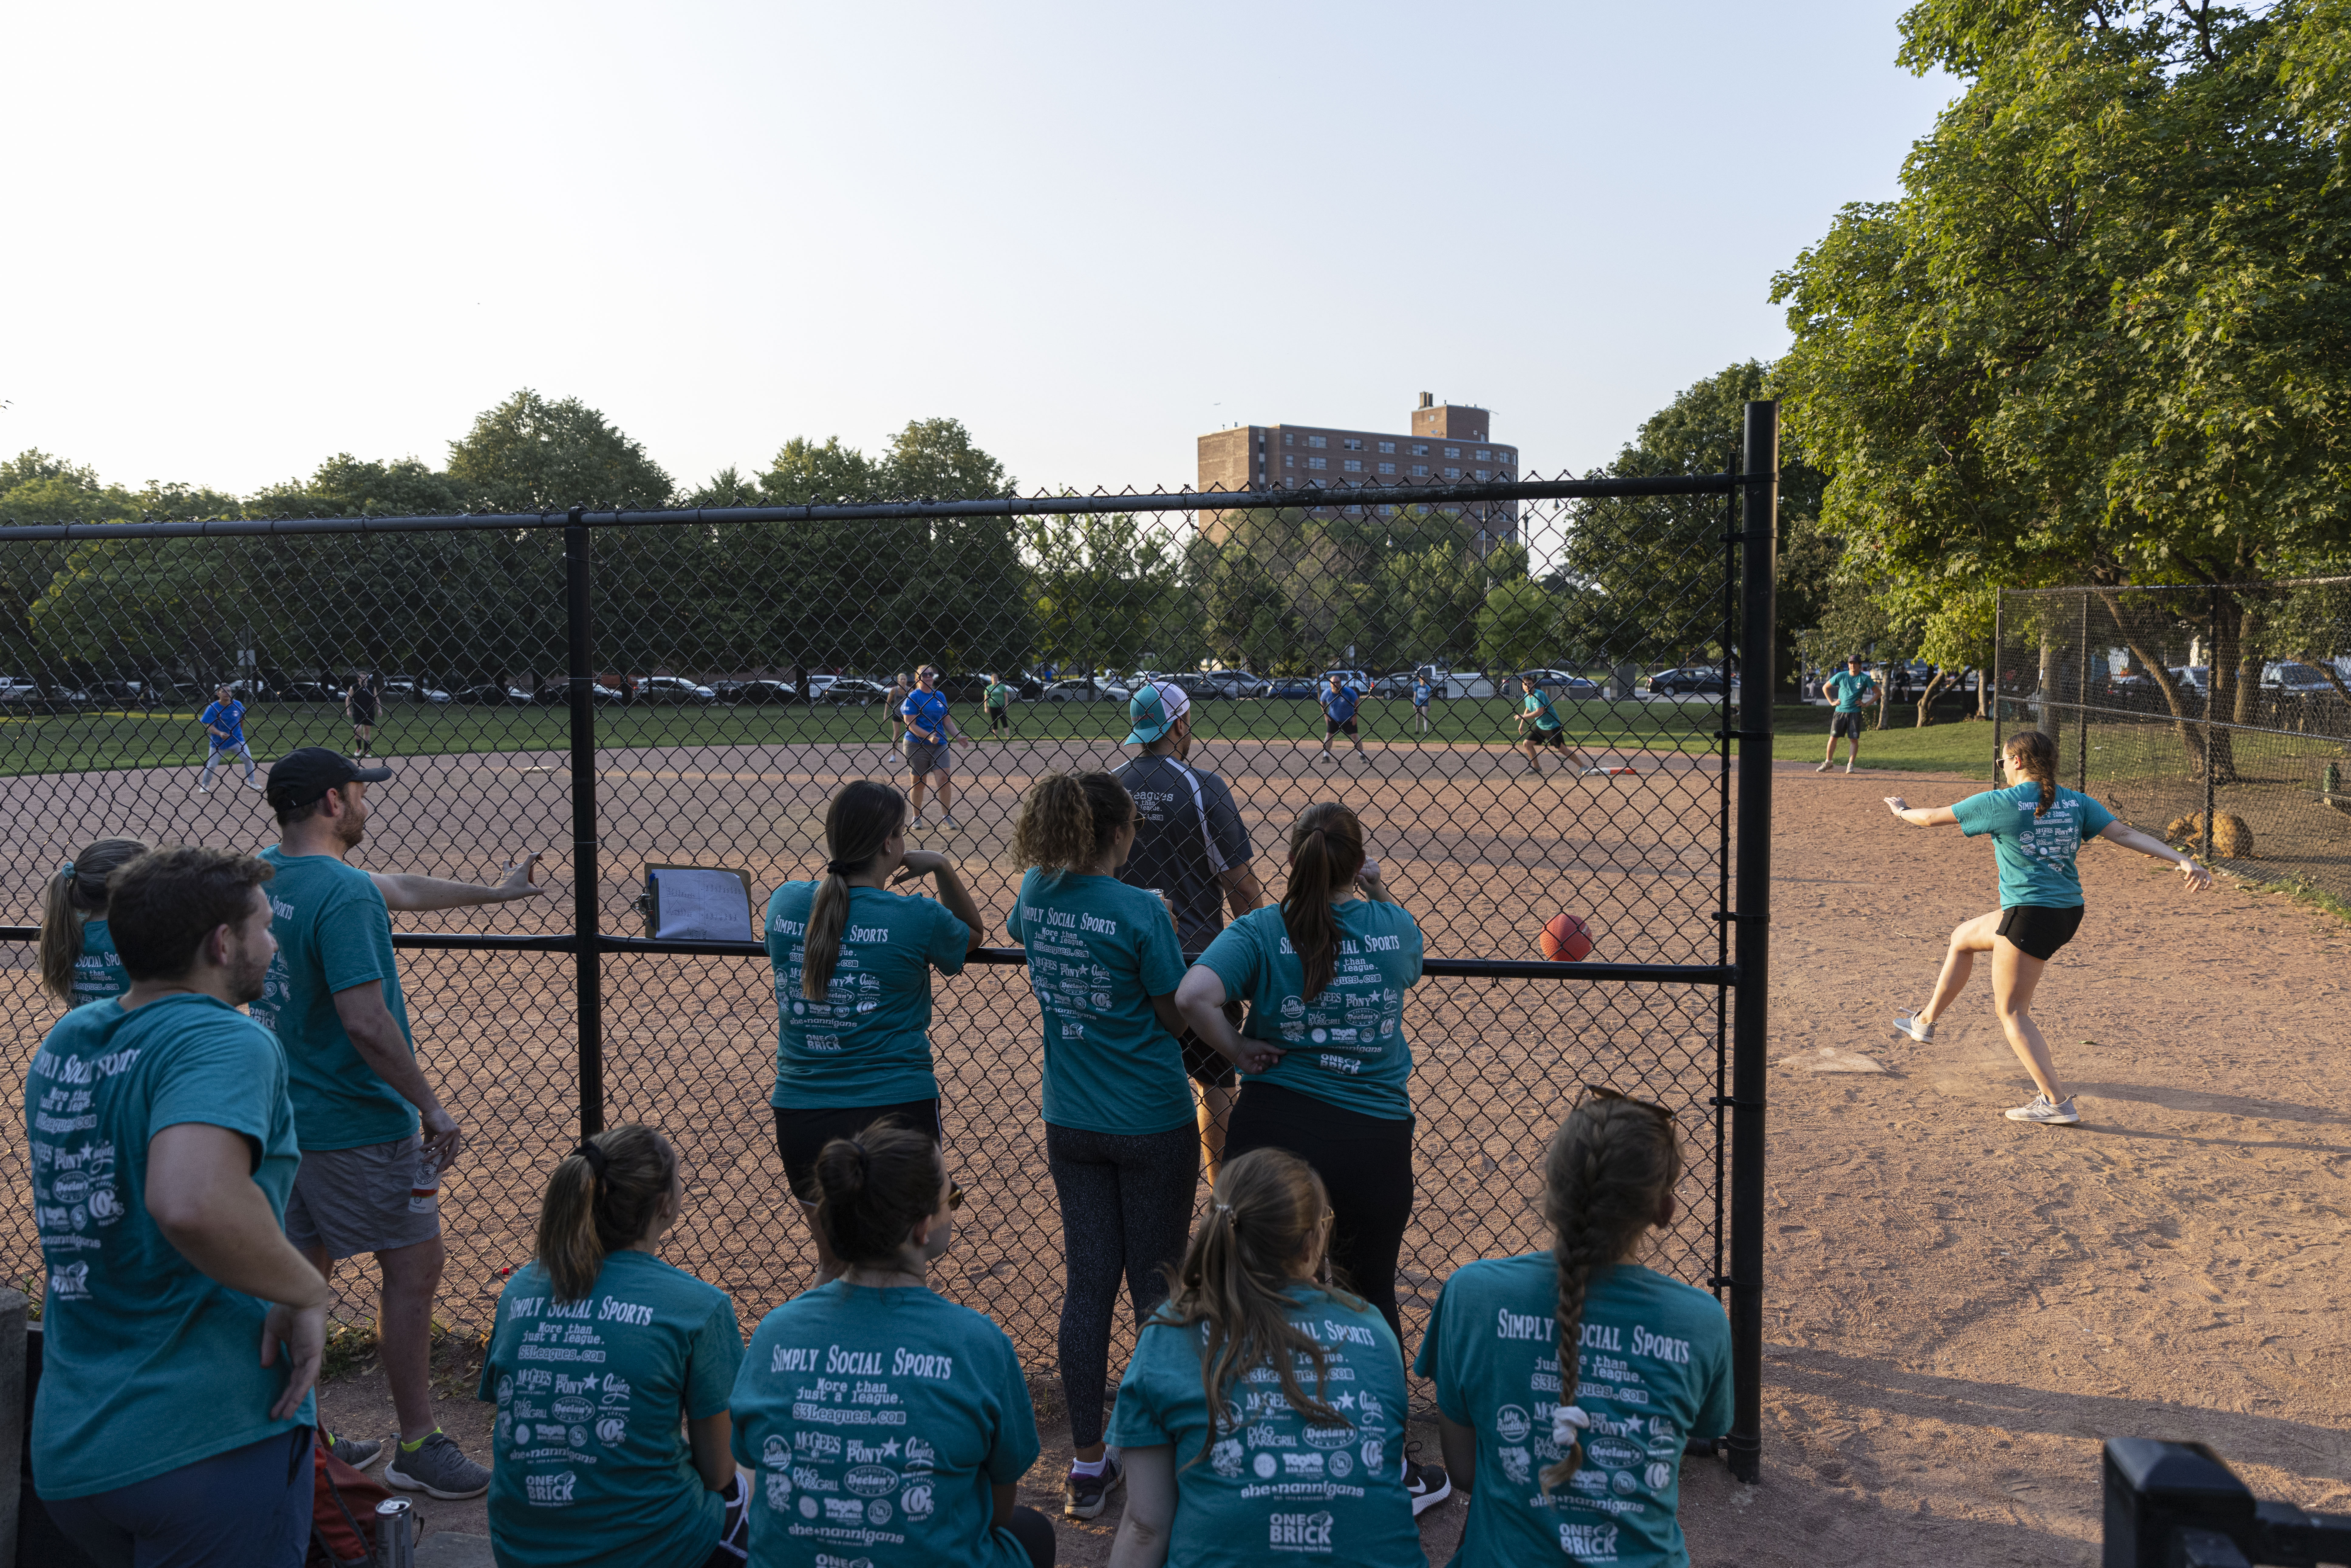 A Simply Social Sports adult kickball playoff game at Jonquil Park on Tuesday, July 27, 2021.